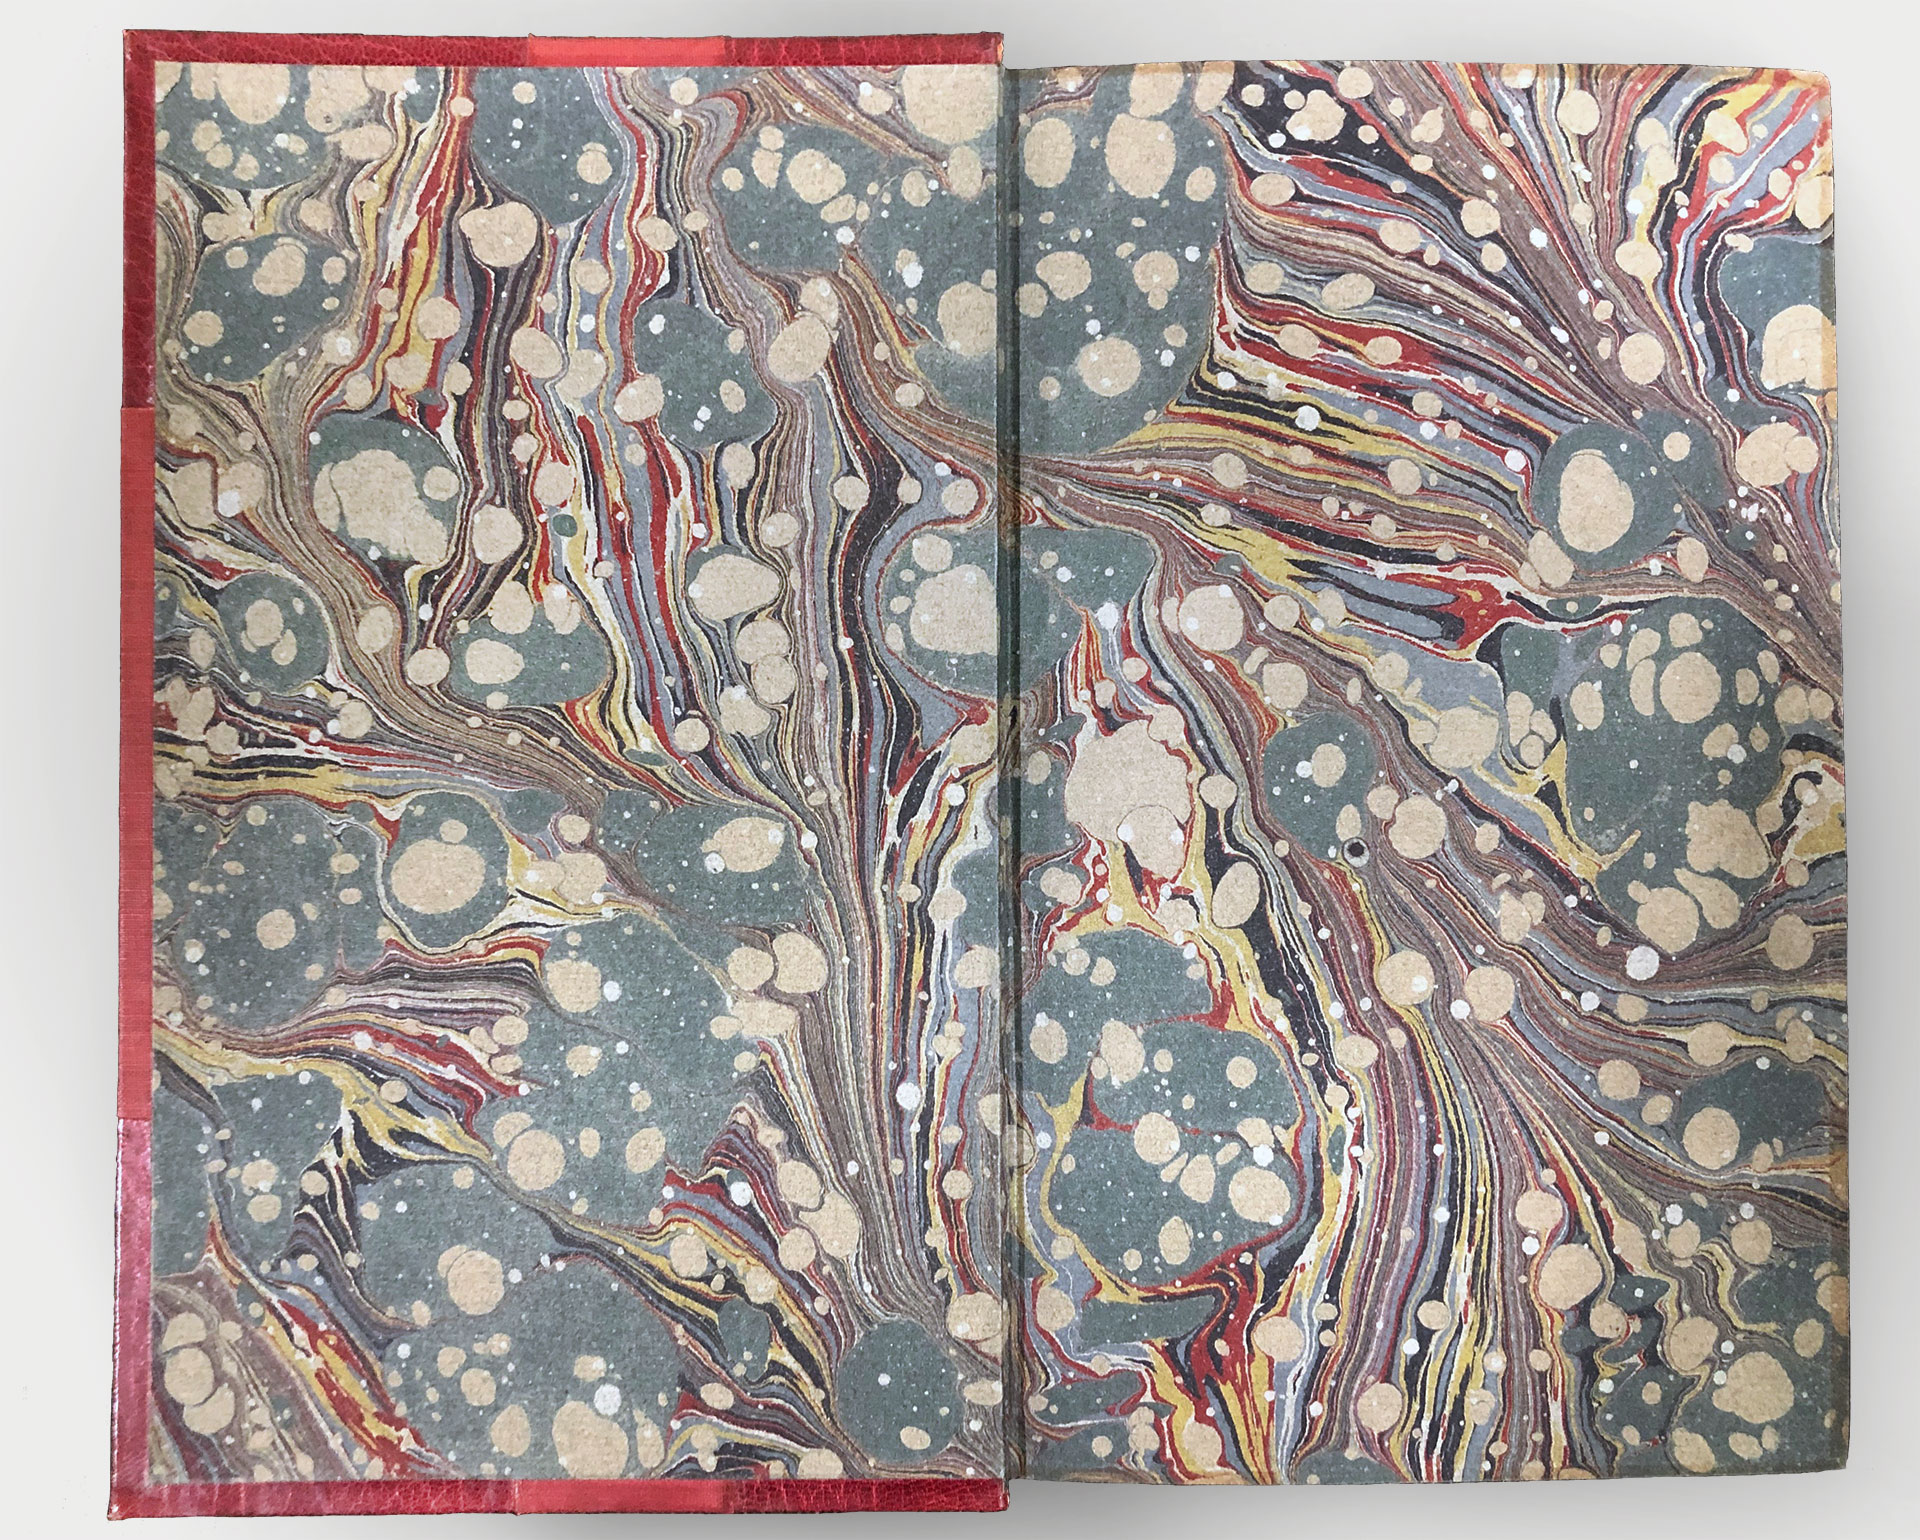 Endpapers with a colourful but dimmed marbled pattern.